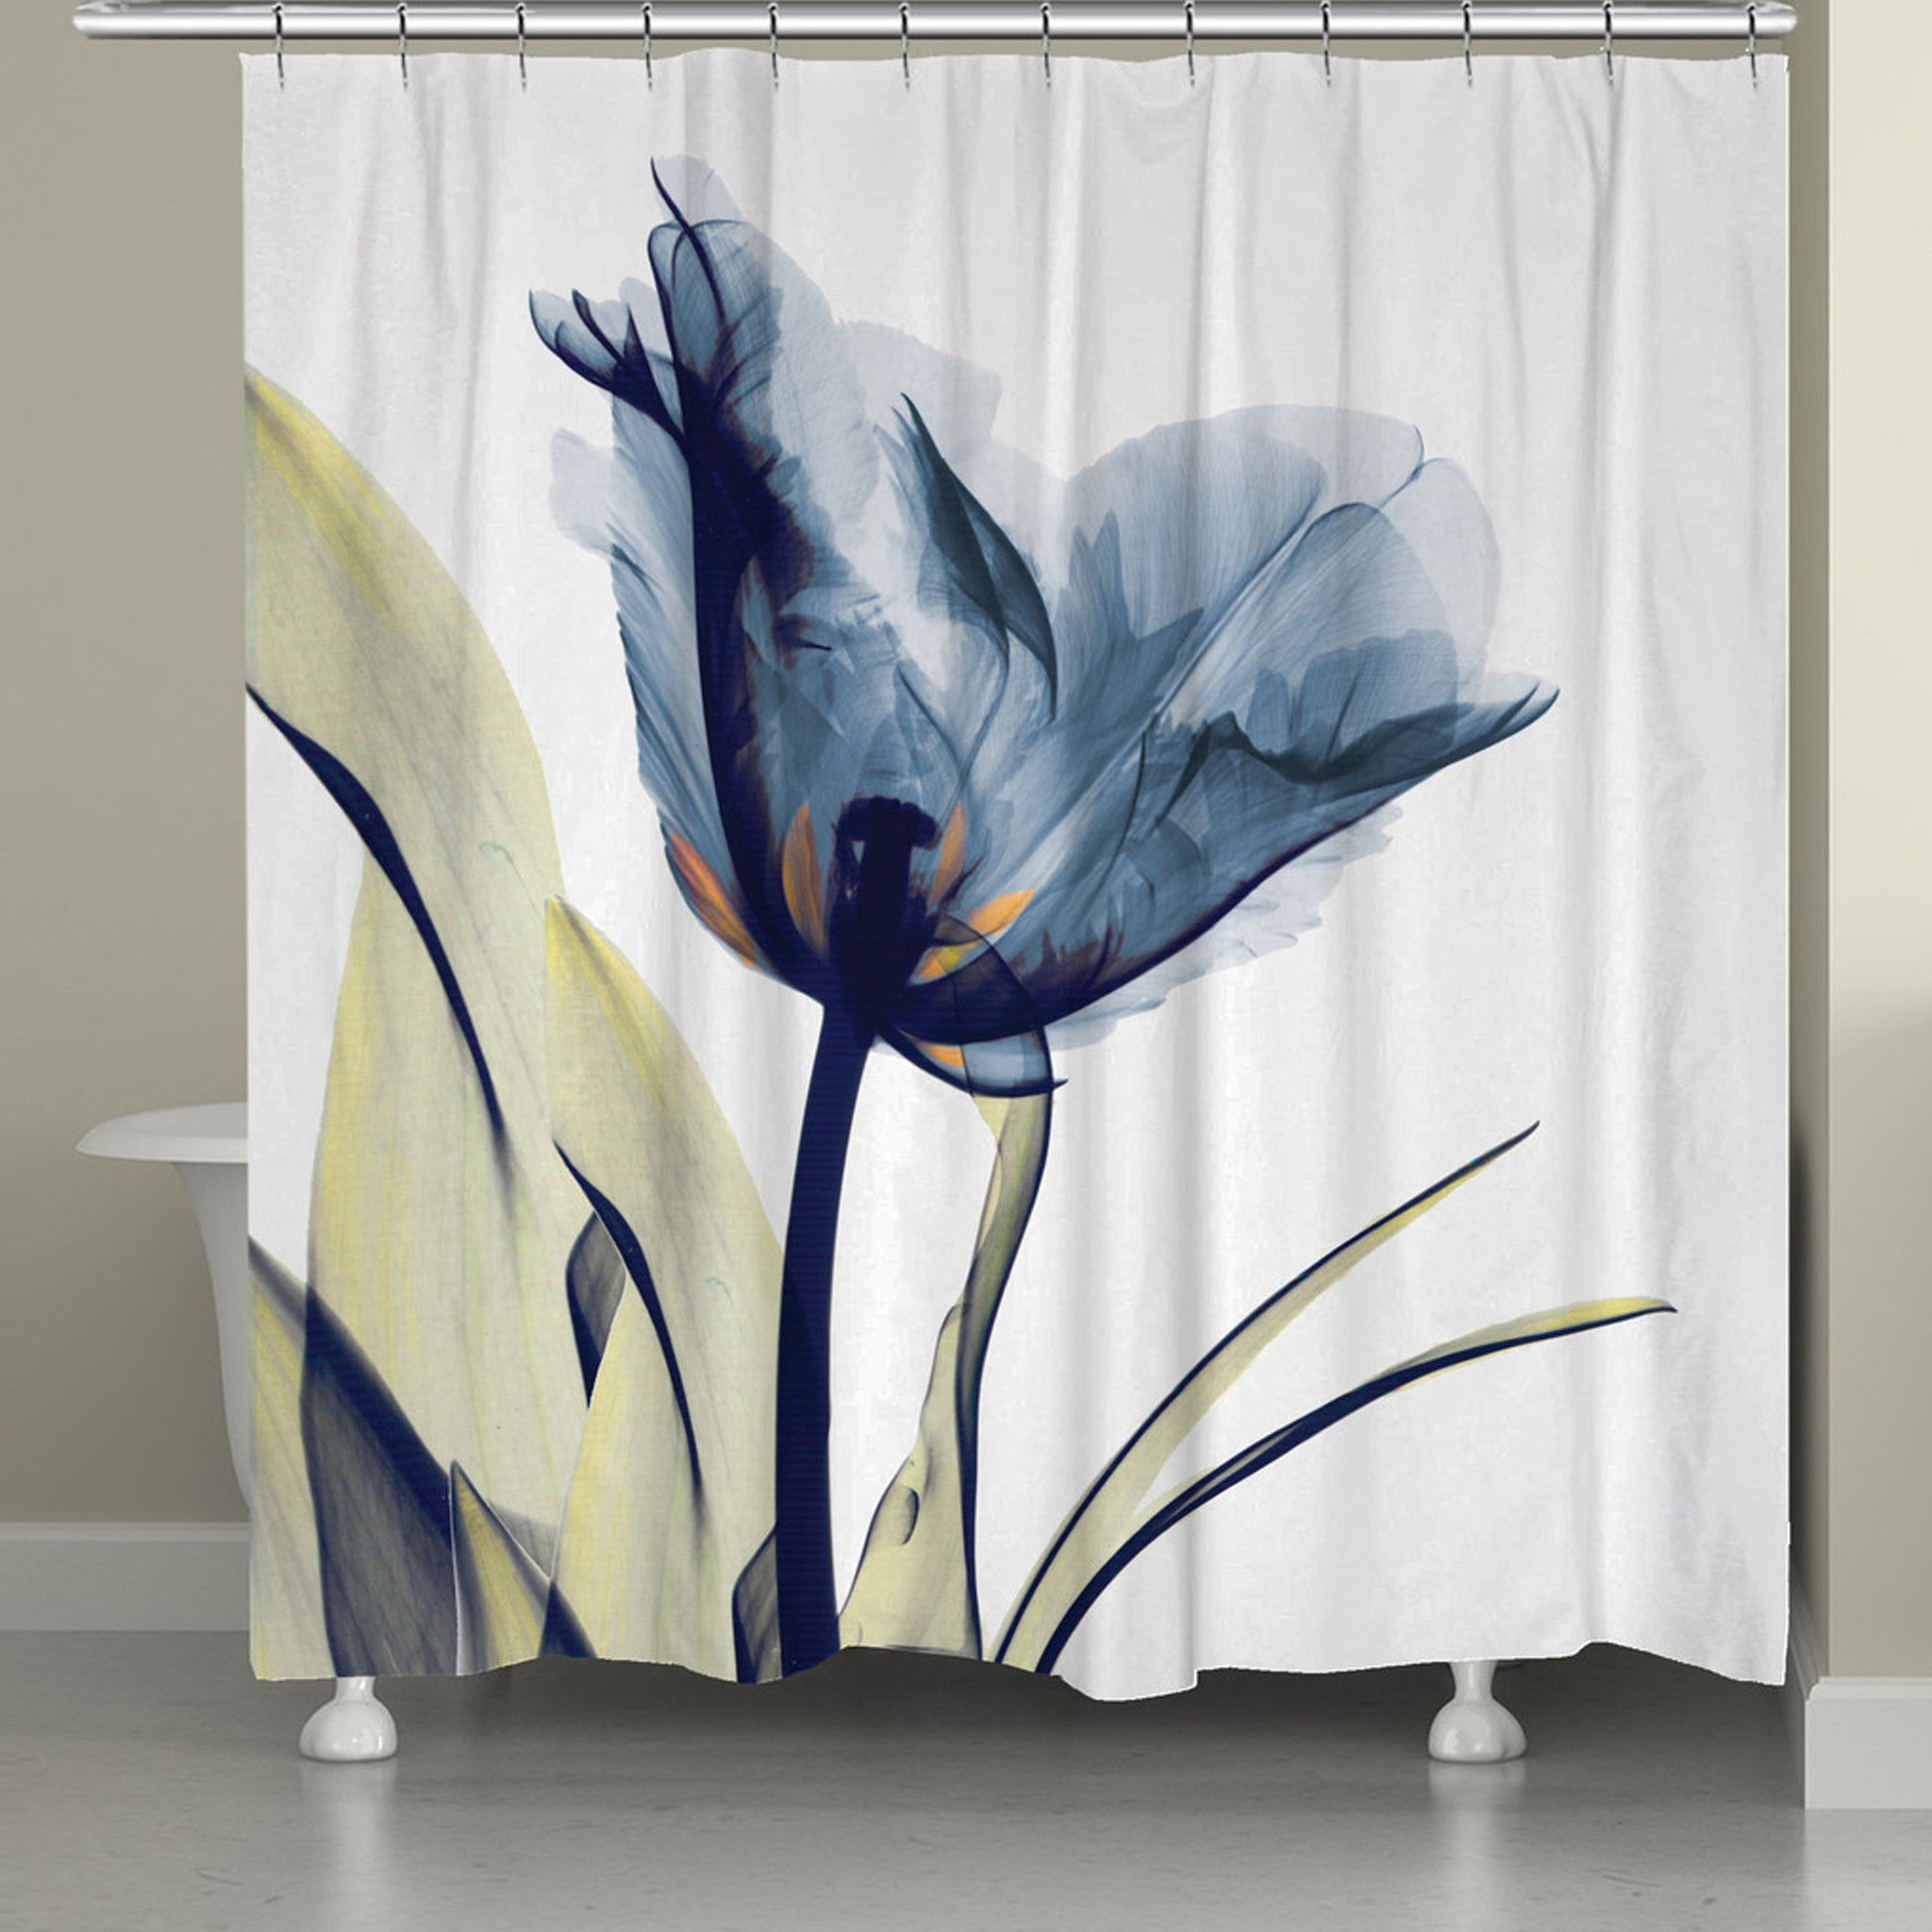 Blue Tulip Shower Curtain Tulip Shower Curtain Curtains Shower